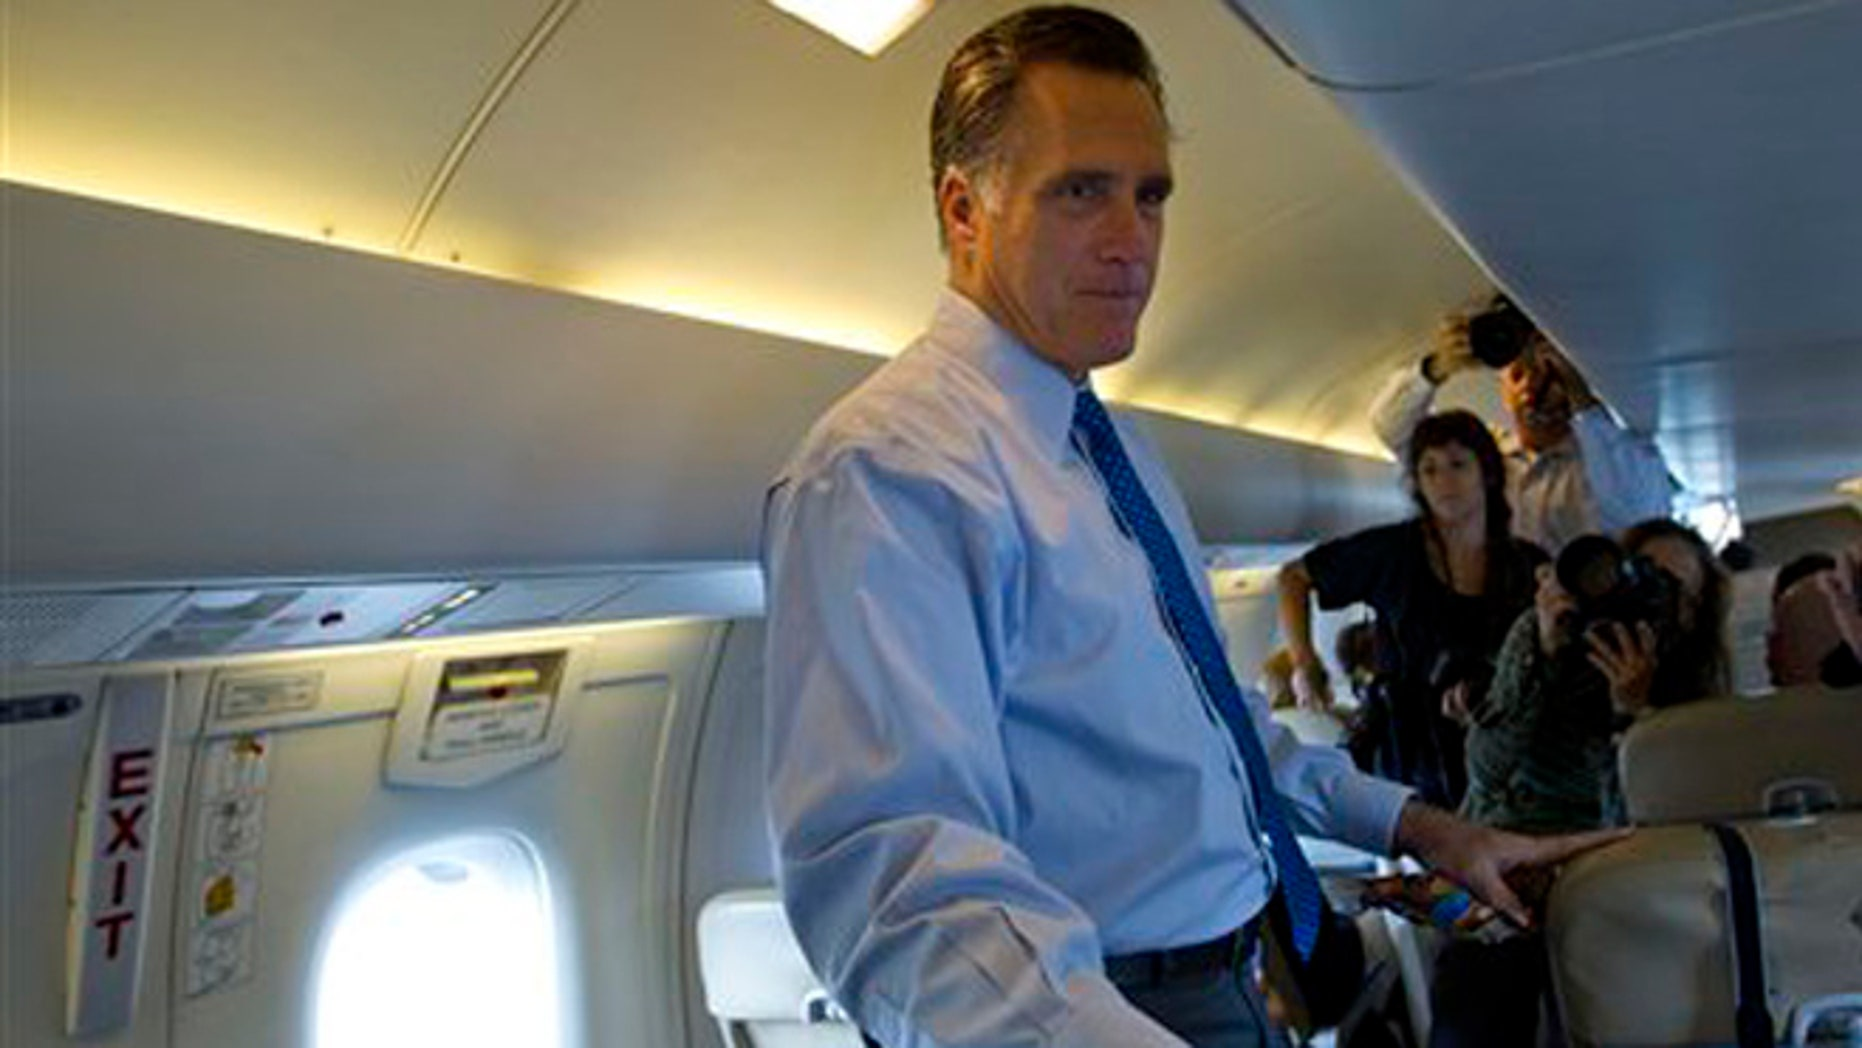 Aug. 18, 2012: Republican presidential candidate Mitt Romney talks to reporters during a flight to Hyannis-Barnstable Municipal airport in Hyannis, Mass.